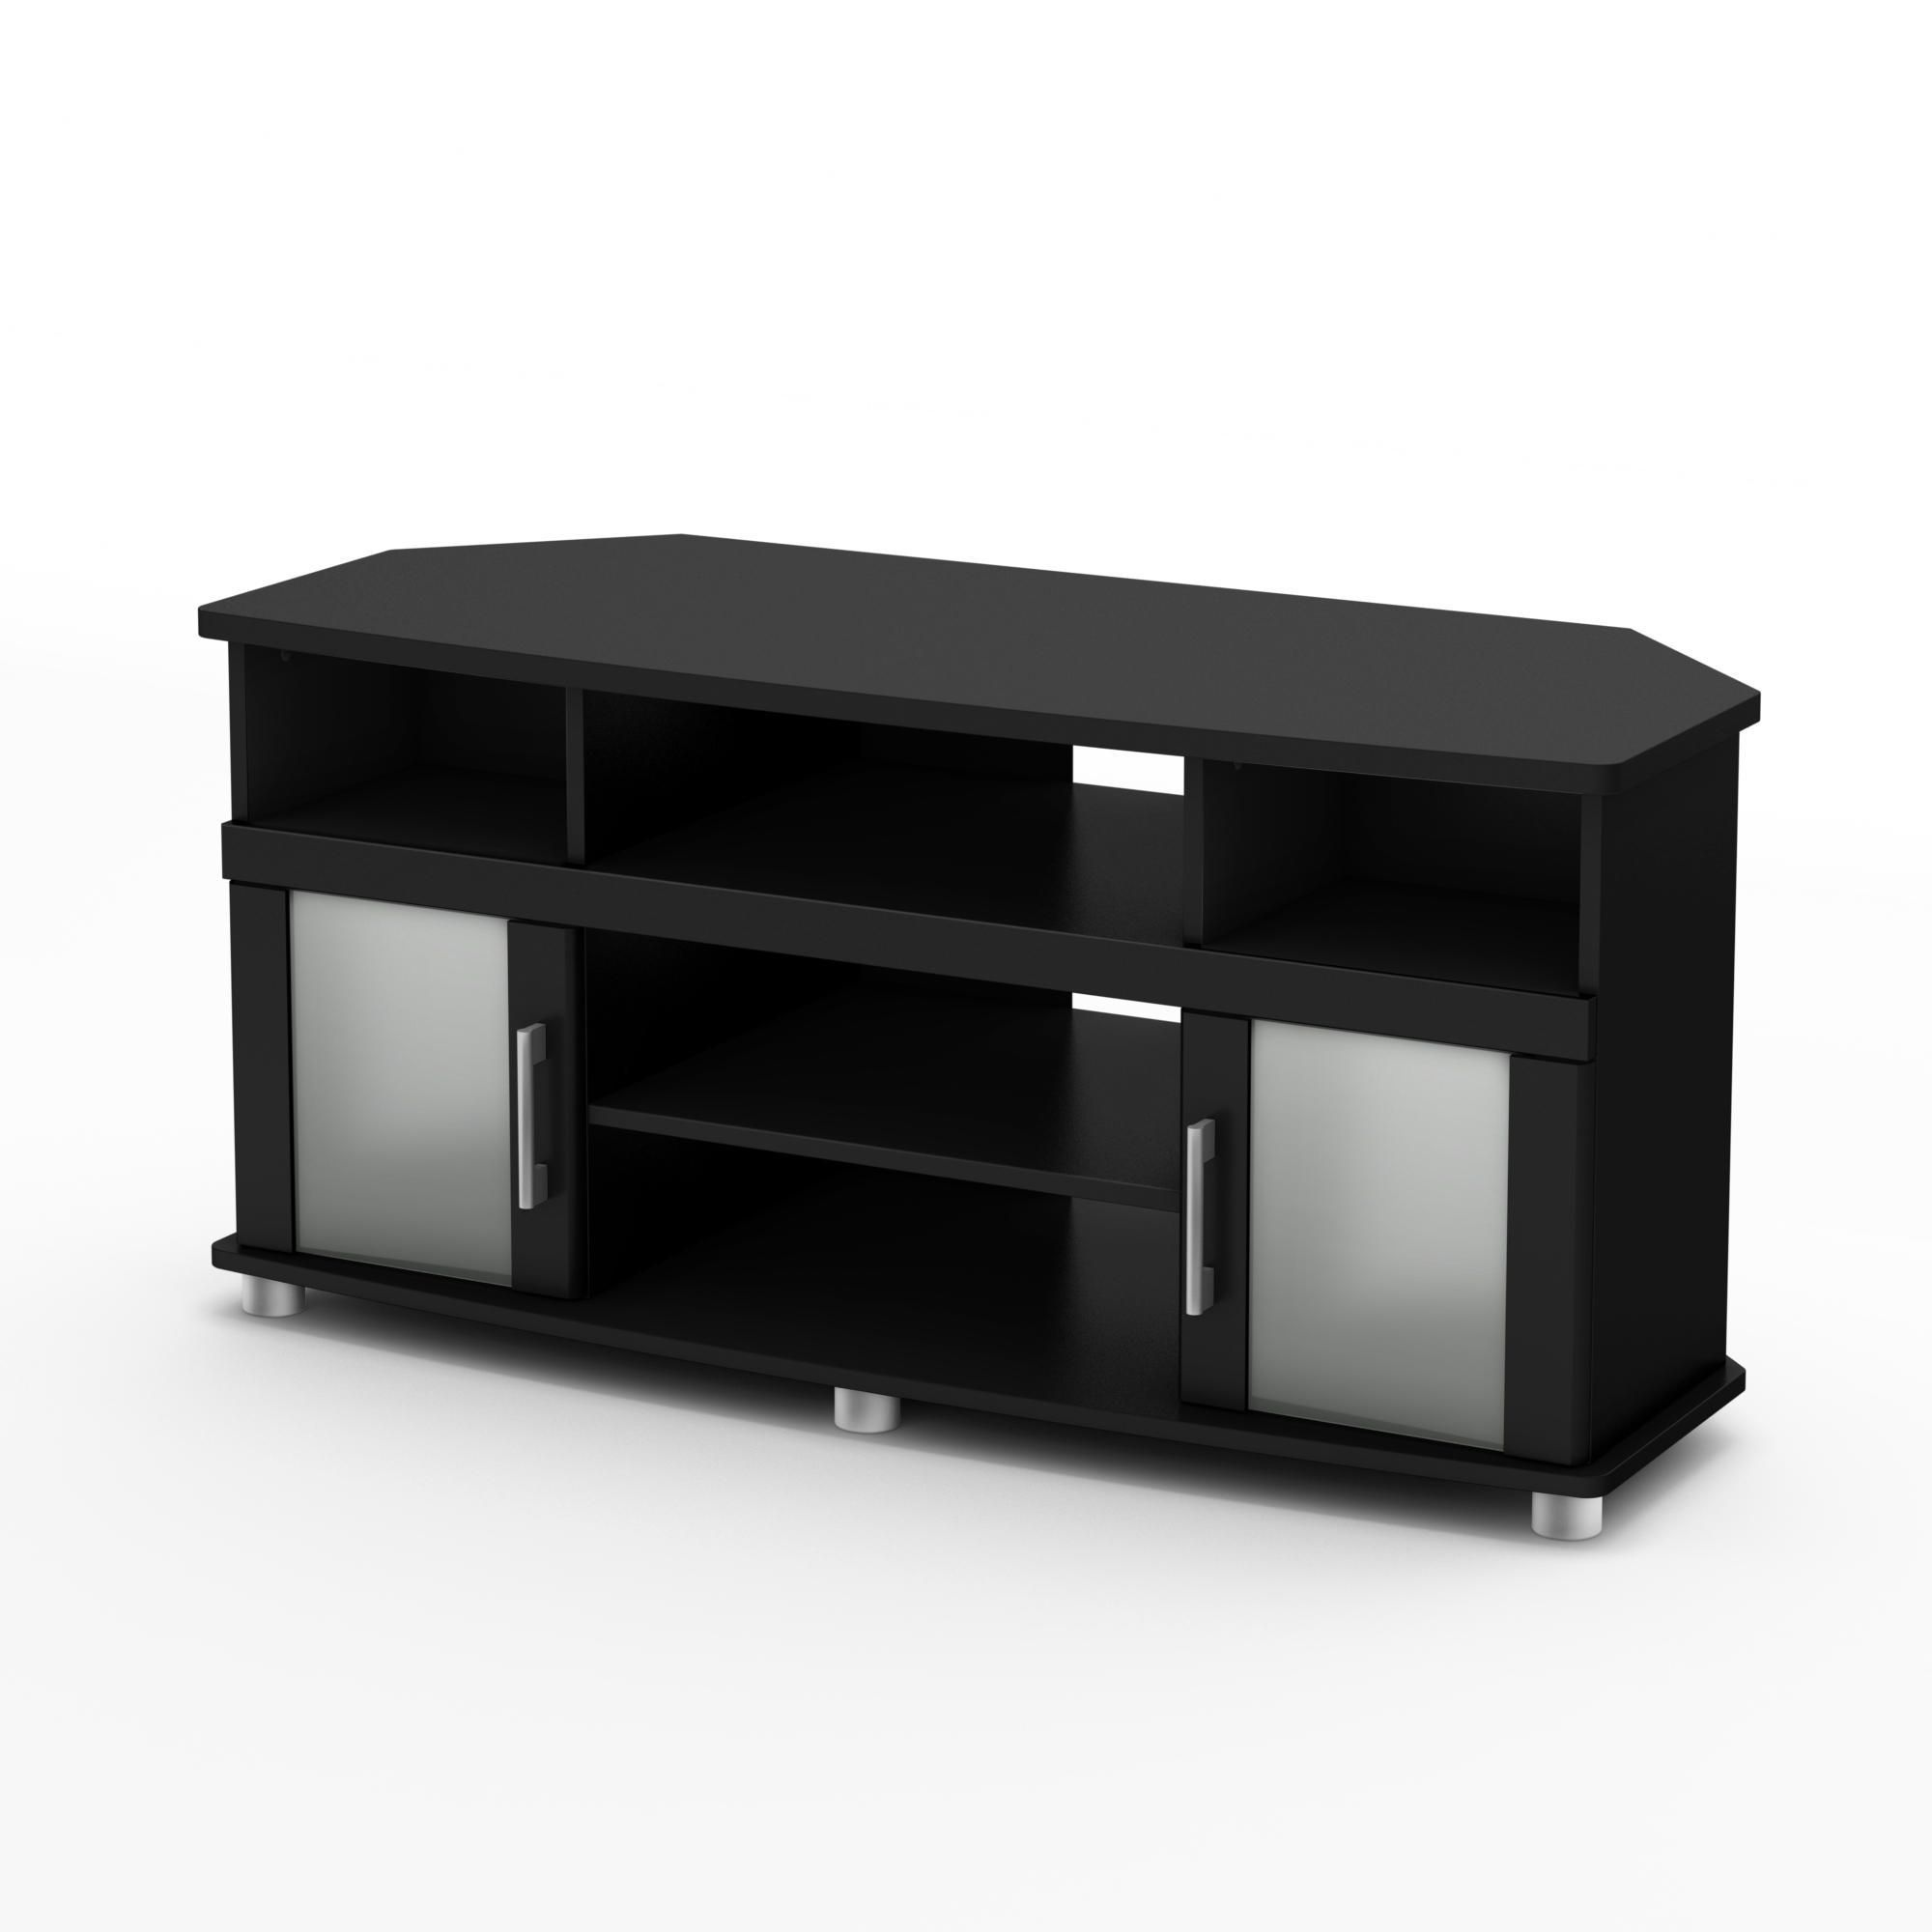 south shore city life corner tv stand for tvs up to  inches  - south shore city life corner tv stand for tvs up to  inches  walmartca